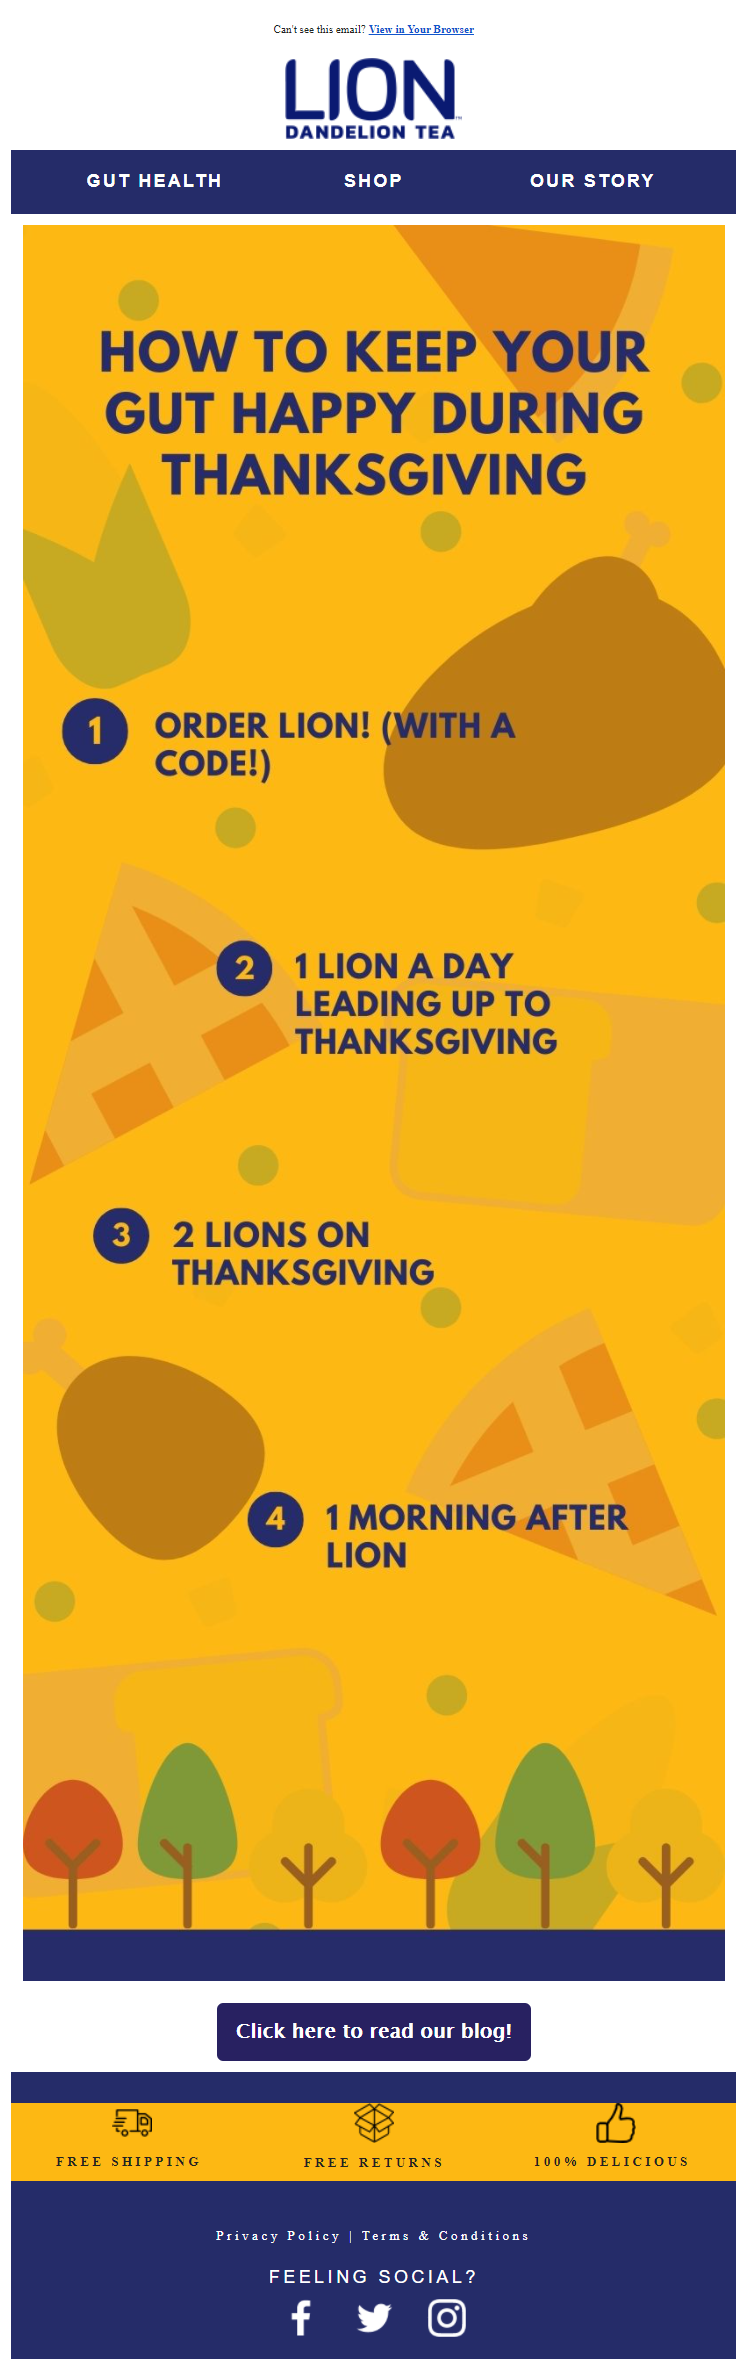 emrays-gourmet-inc-how-to-keep-your-gut-happy-this-thanksgiving